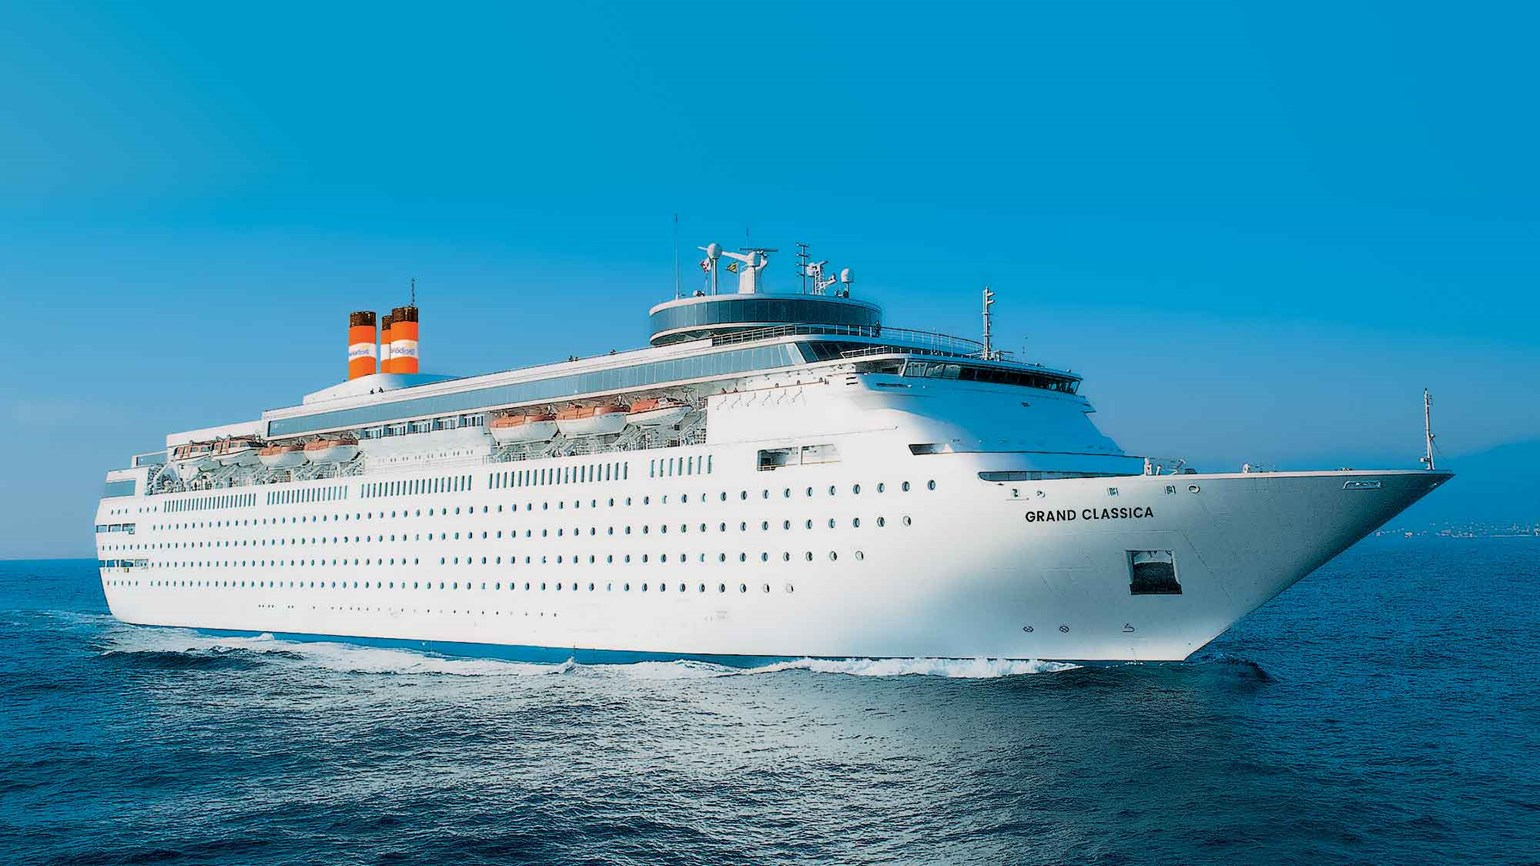 Bahamas Paradise names second ship Grand Classica